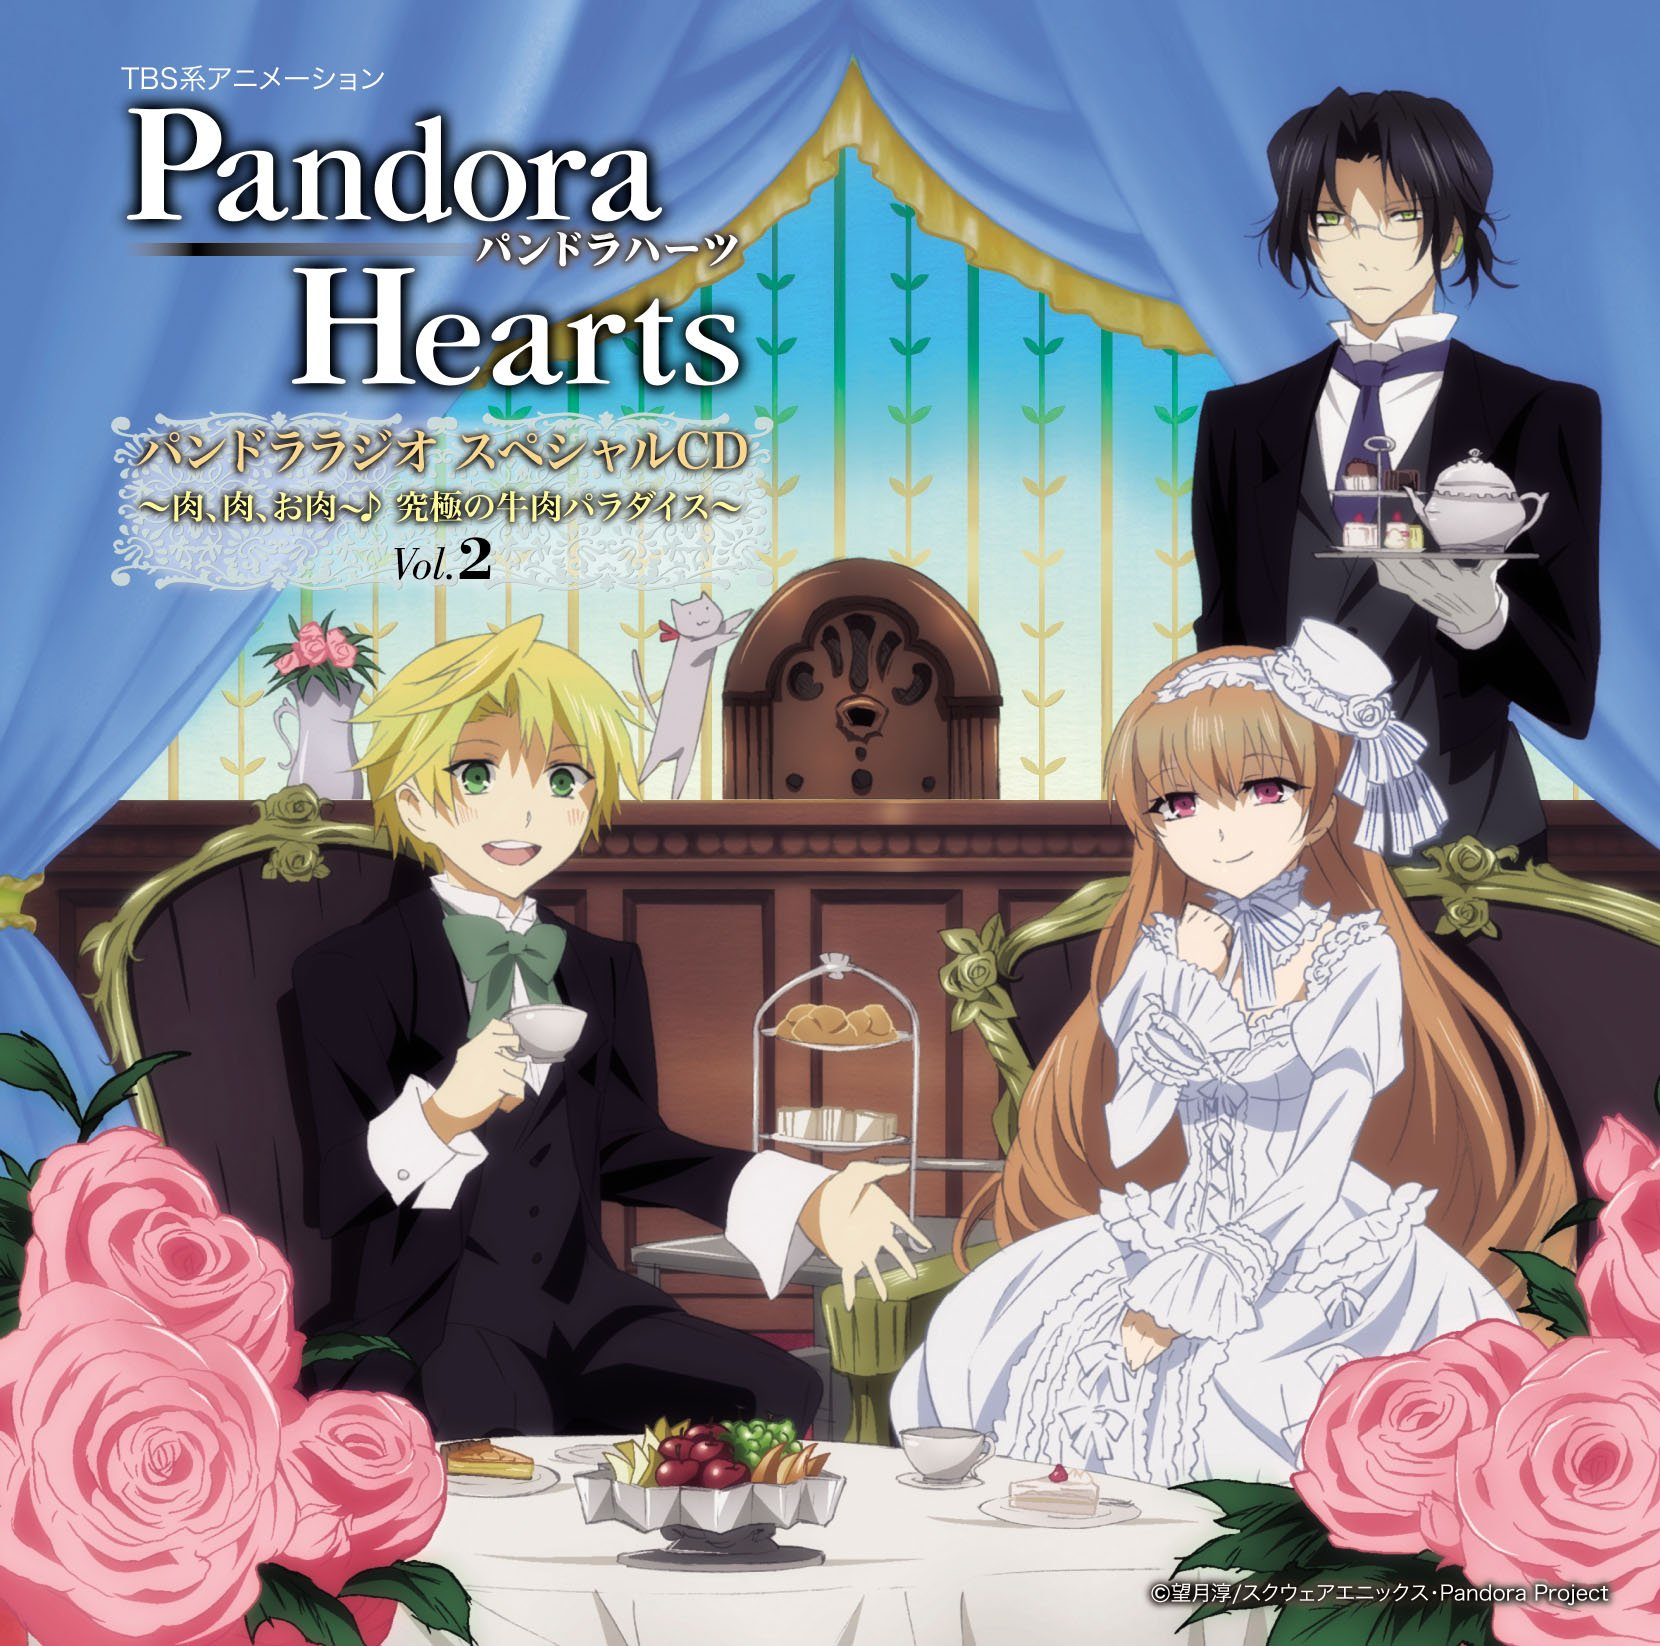 Pandora Hearts Vol 23 Gunstige together with Manga Art Styles Jun Mochizuki together with File Zwei 1 together with Intention Of The Abyss 164319459 besides Ph Break And Vincent 346521679. on pandora hearts vol 3